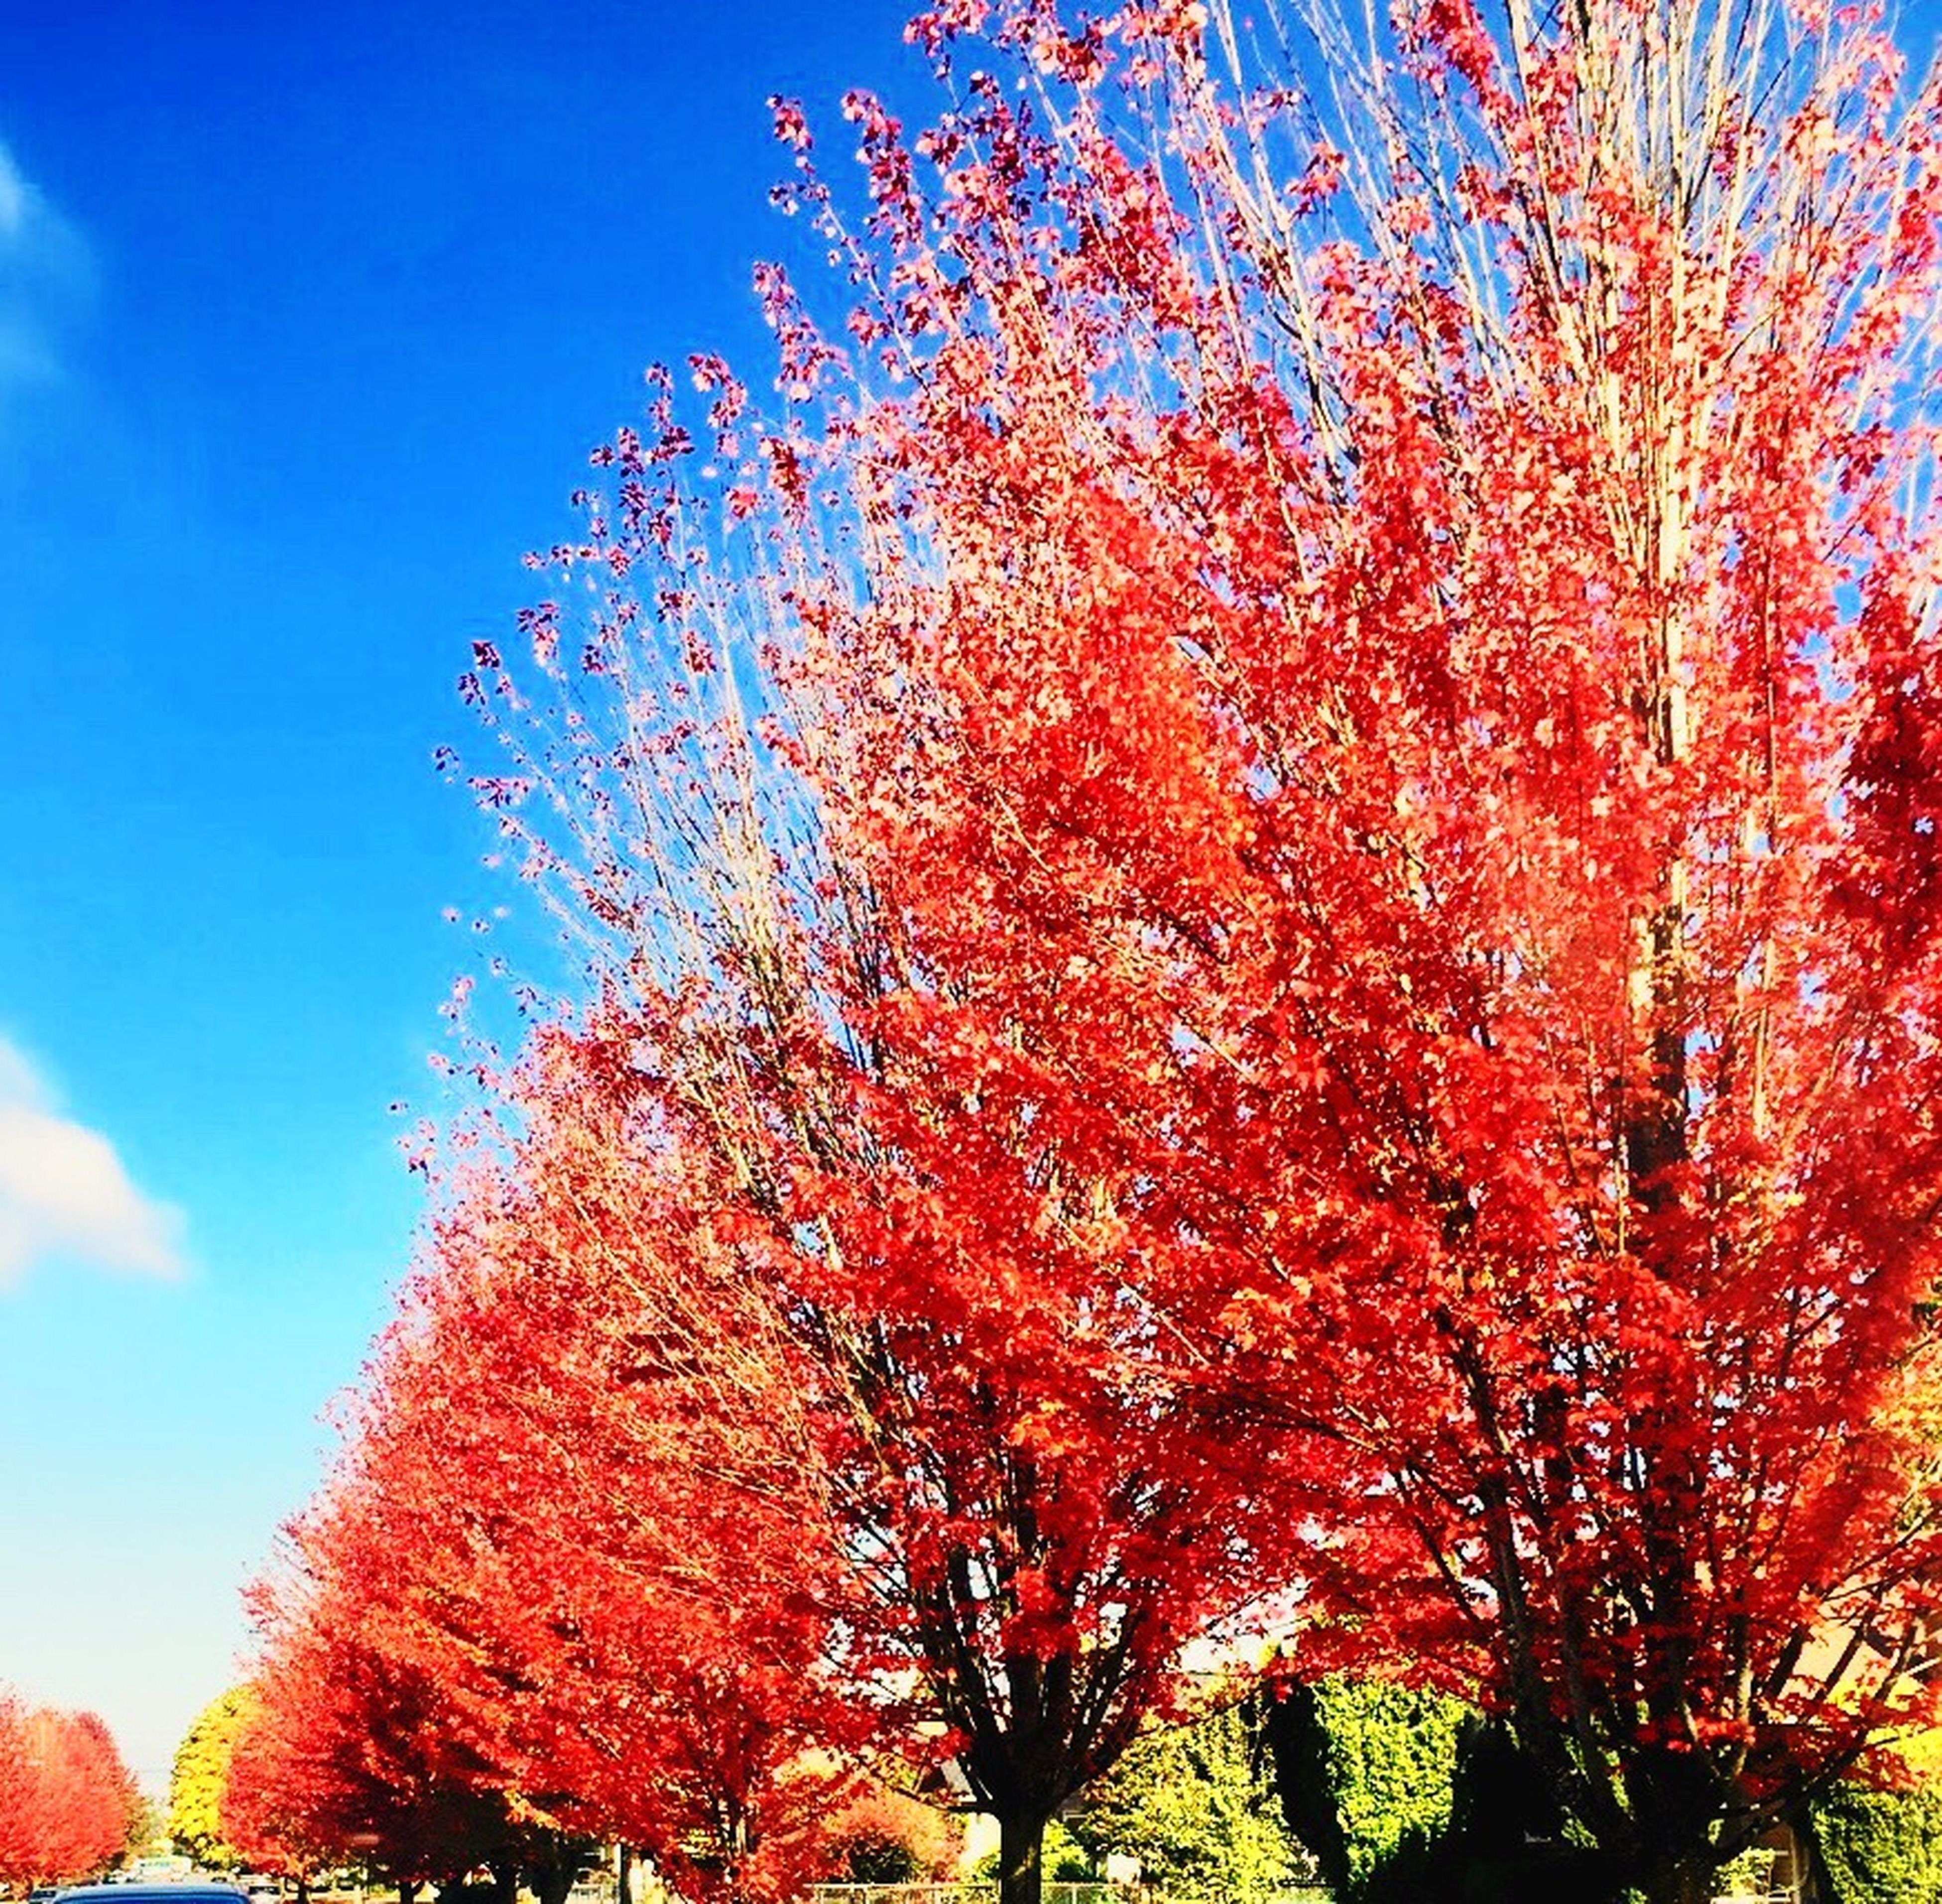 tree, low angle view, growth, beauty in nature, season, nature, pink color, scenics, change, sky, flower, branch, tranquility, tranquil scene, blue, day, cloud - sky, springtime, outdoors, cherry blossom, cherry tree, freshness, in bloom, blossom, fragility, majestic, non-urban scene, red, botany, no people